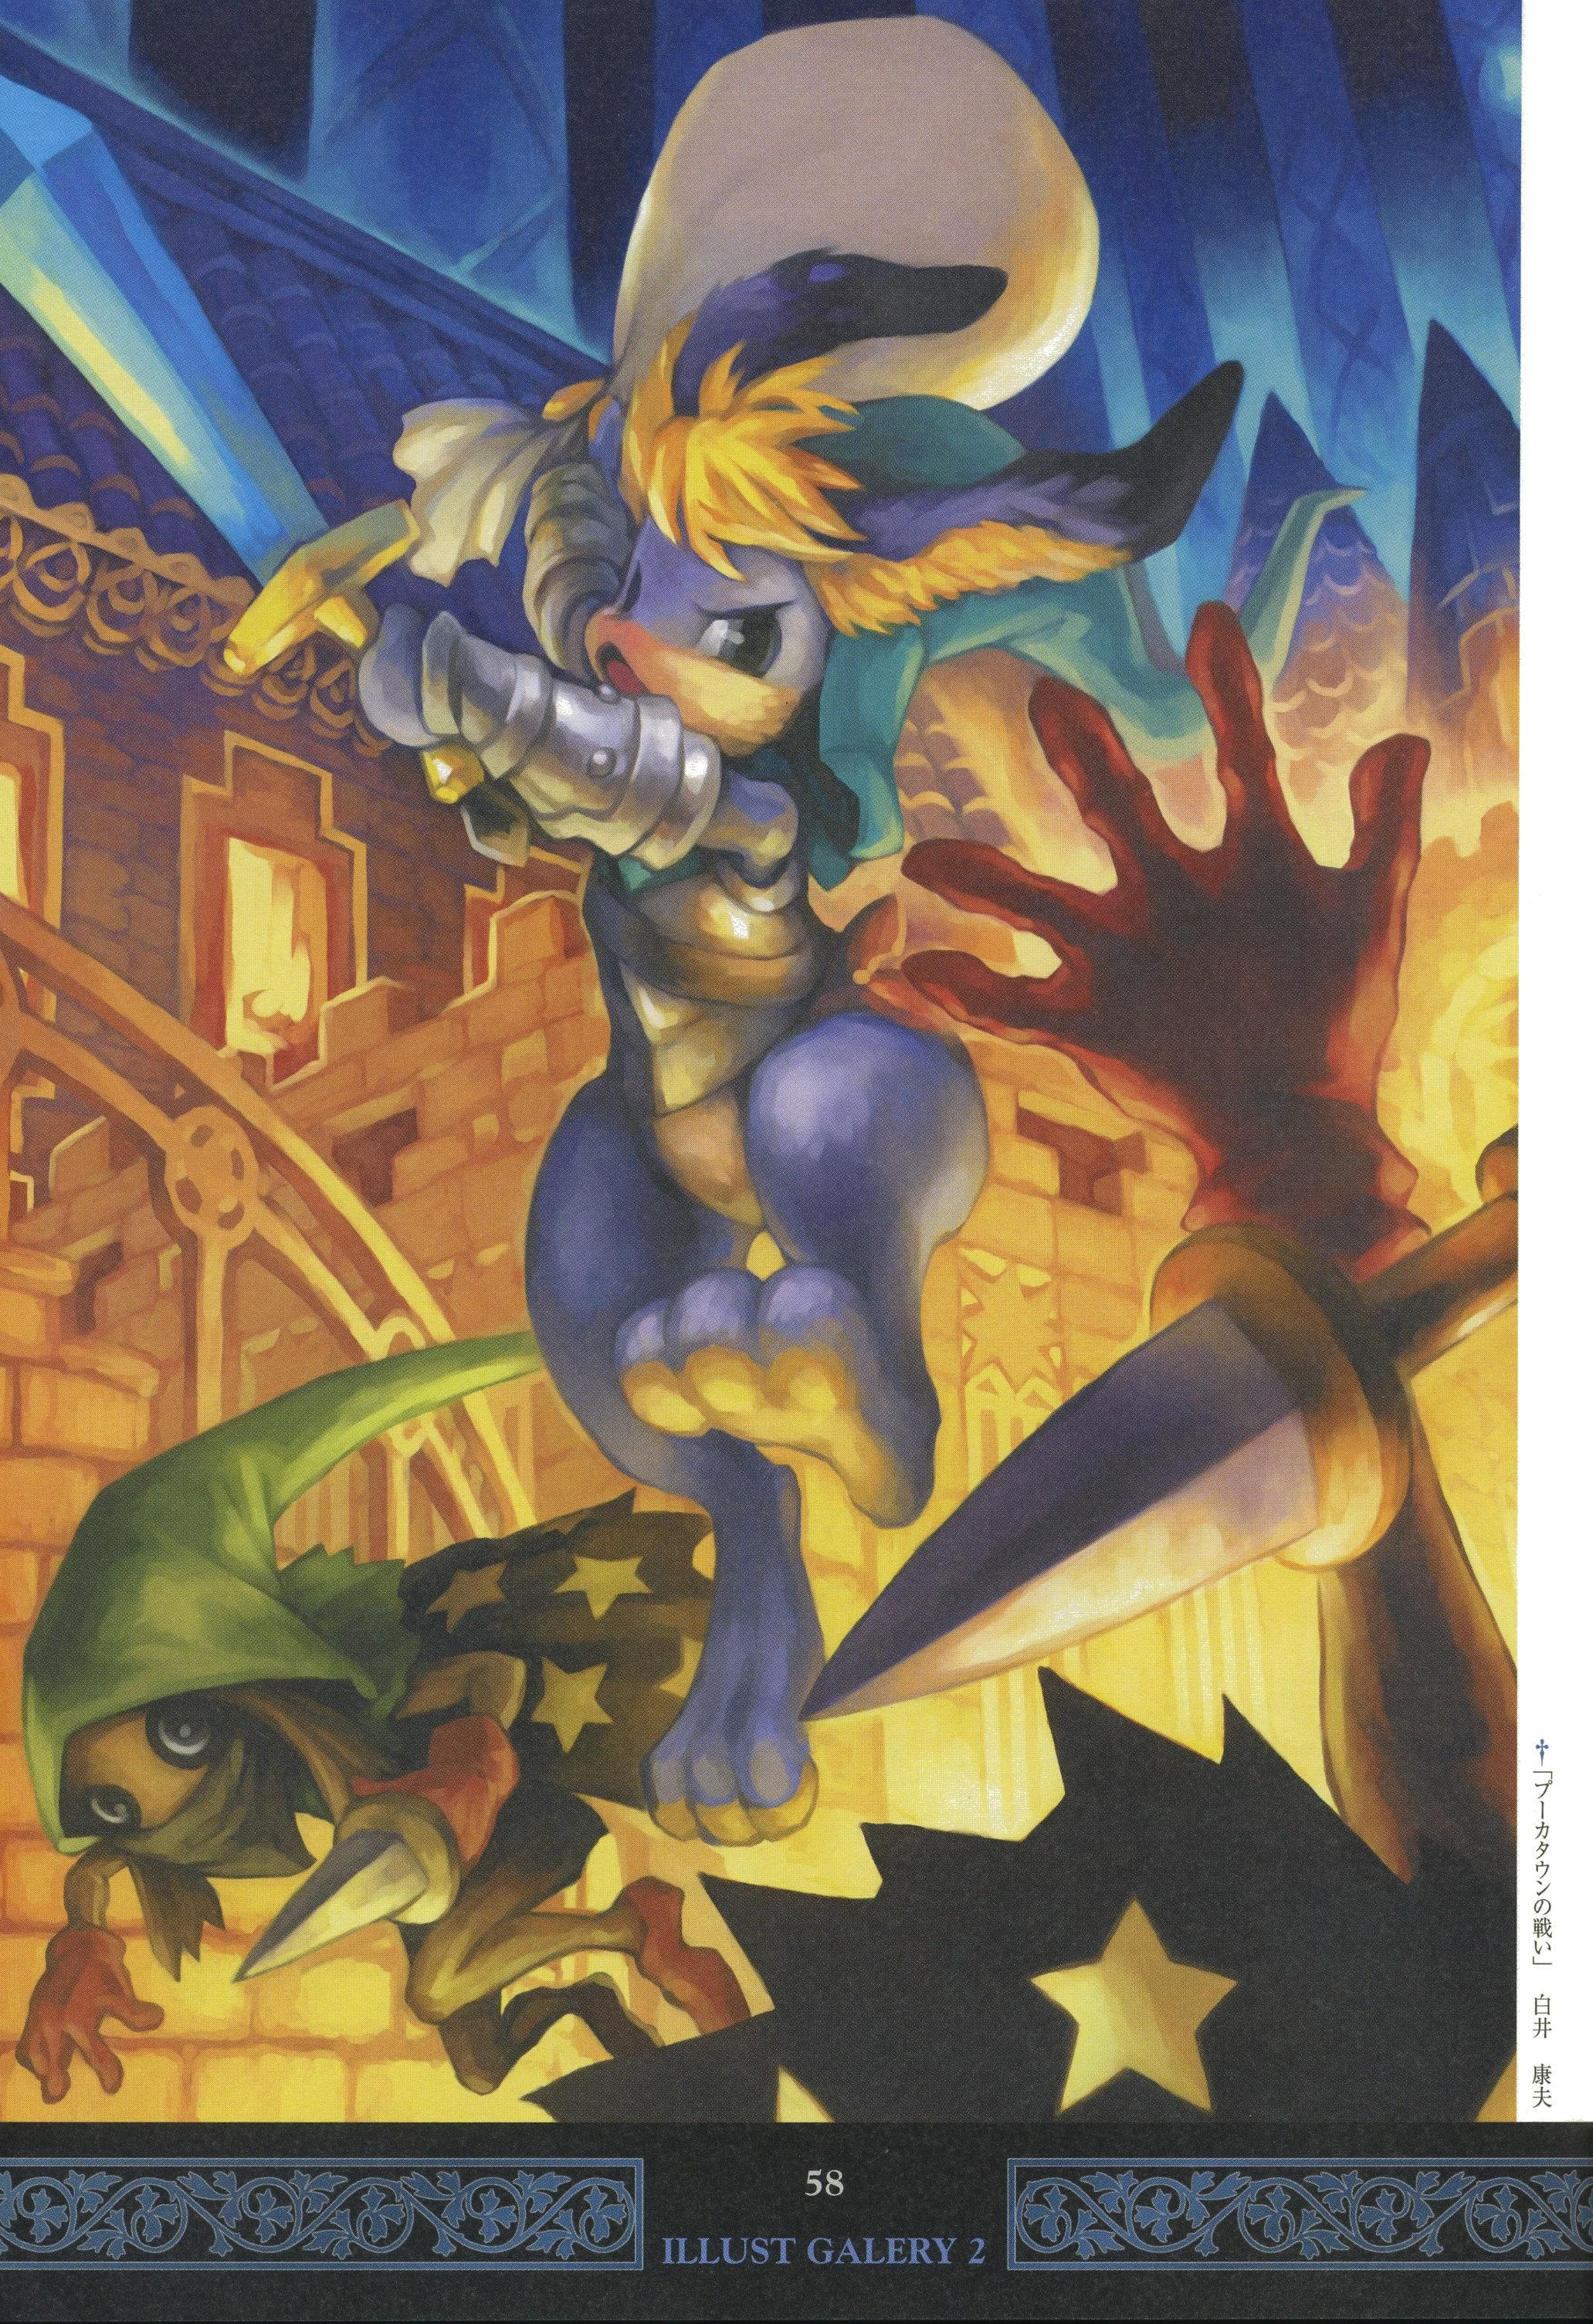 odin sphere artworks book page 58 illustration gallery 2